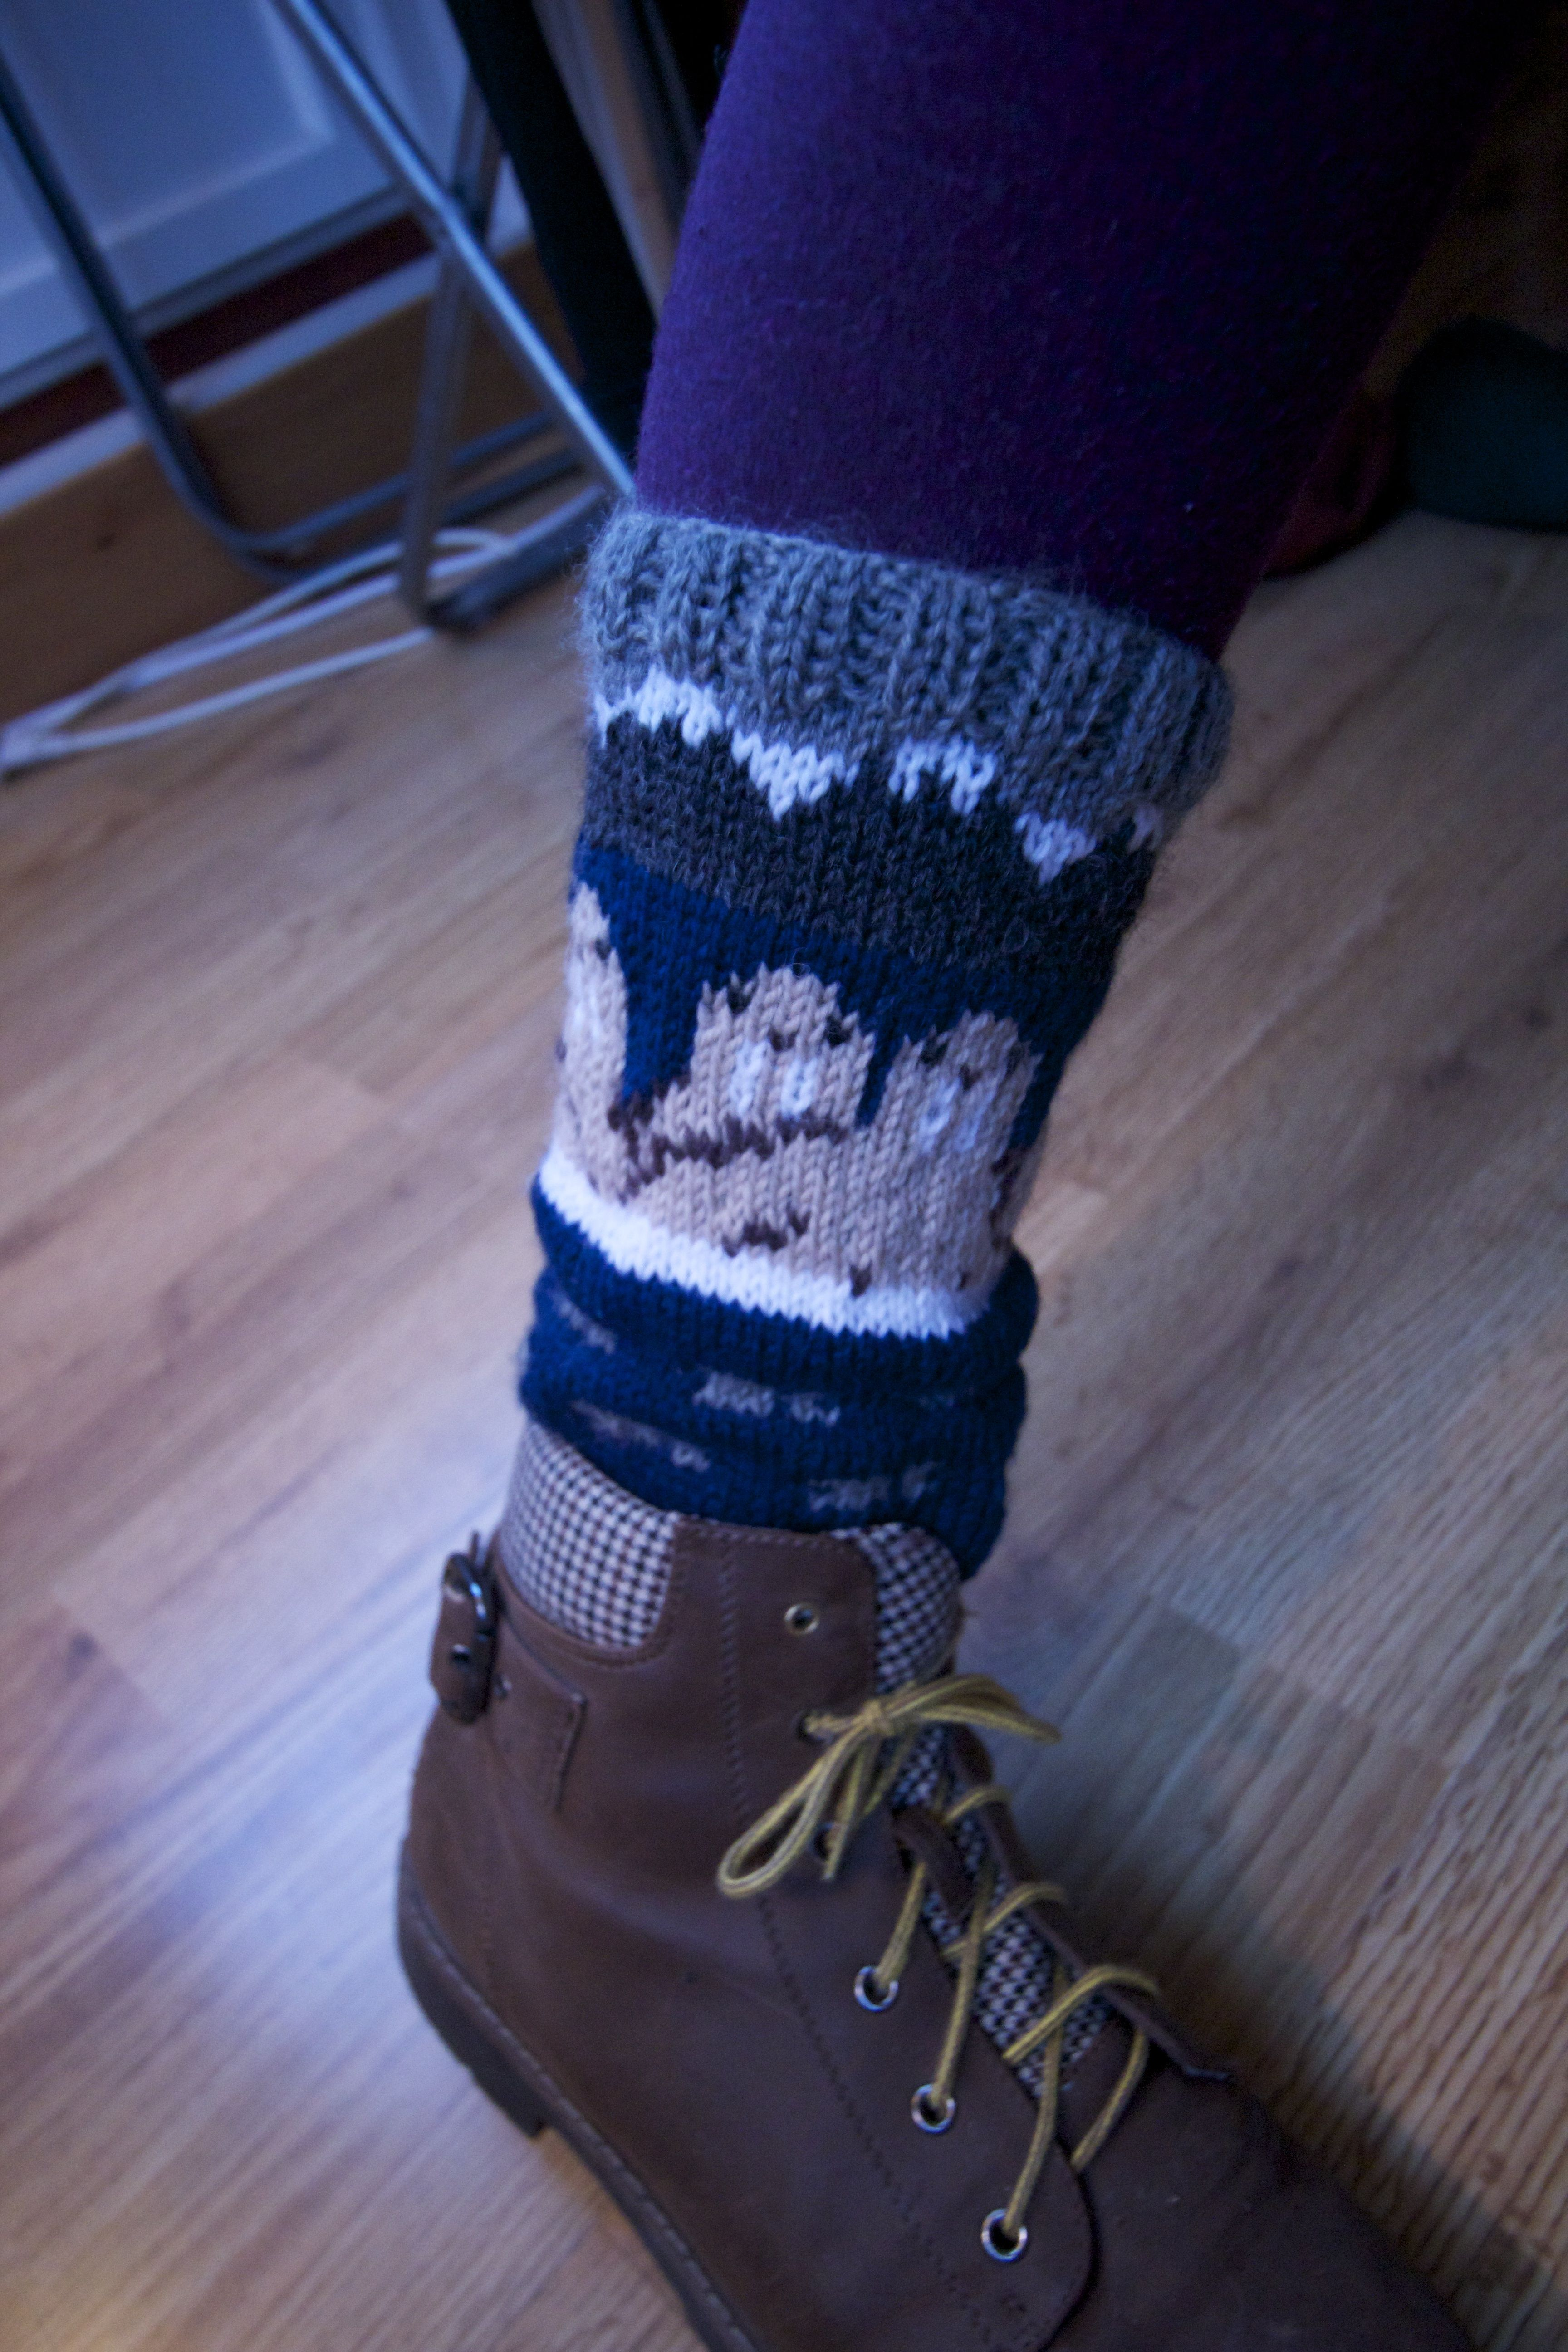 I made some Arctic leg-warmers, with walruses :)